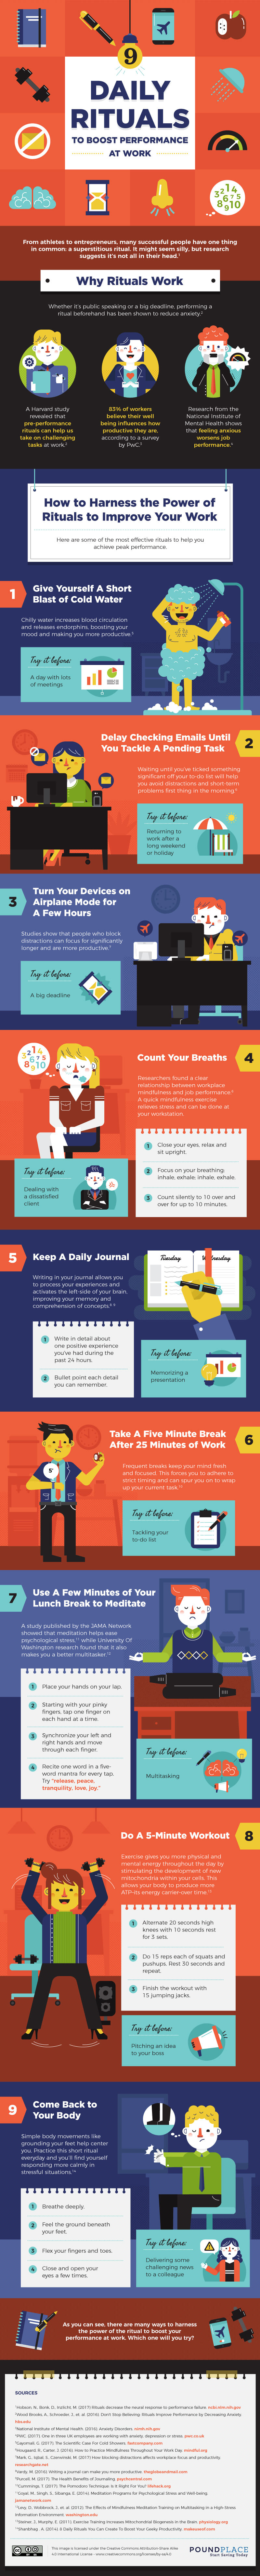 9 Daily Rituals To Boost Productivity [Infographic]